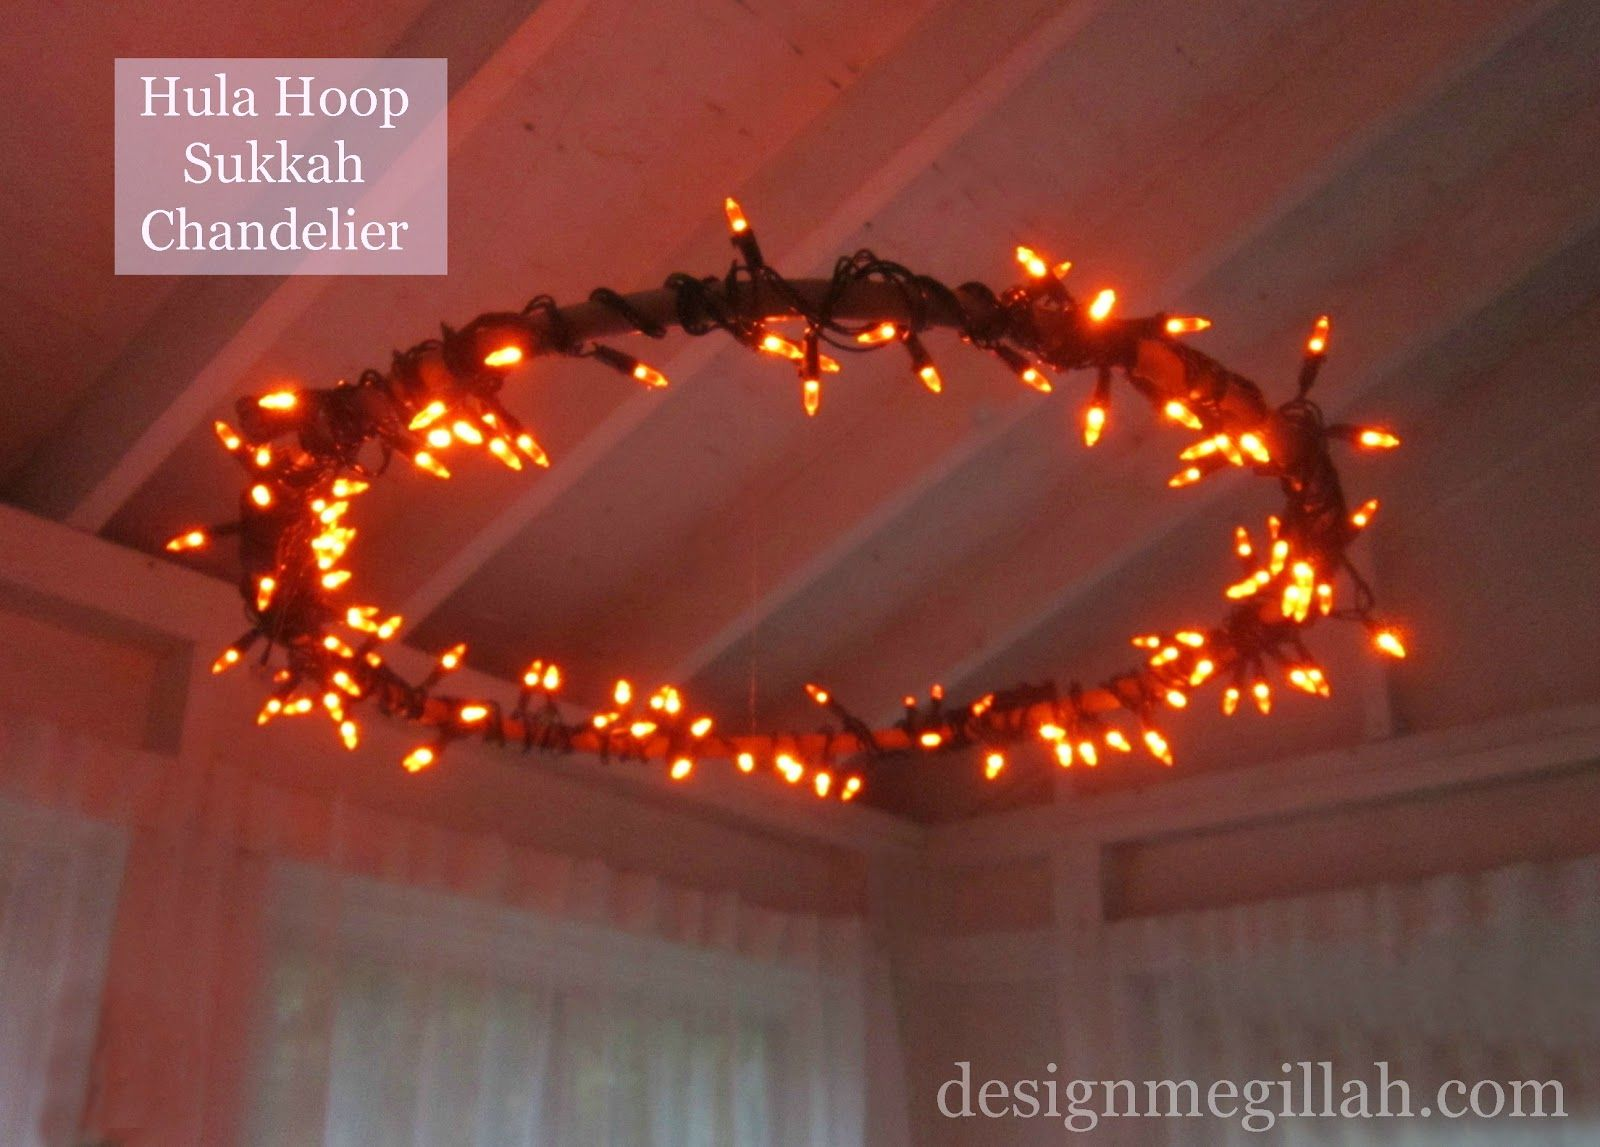 Diy hula hoop sukkah chandelier wow next year for sure sukkot light up your sukkah with this crafty diy sukkah chandelier aloadofball Images